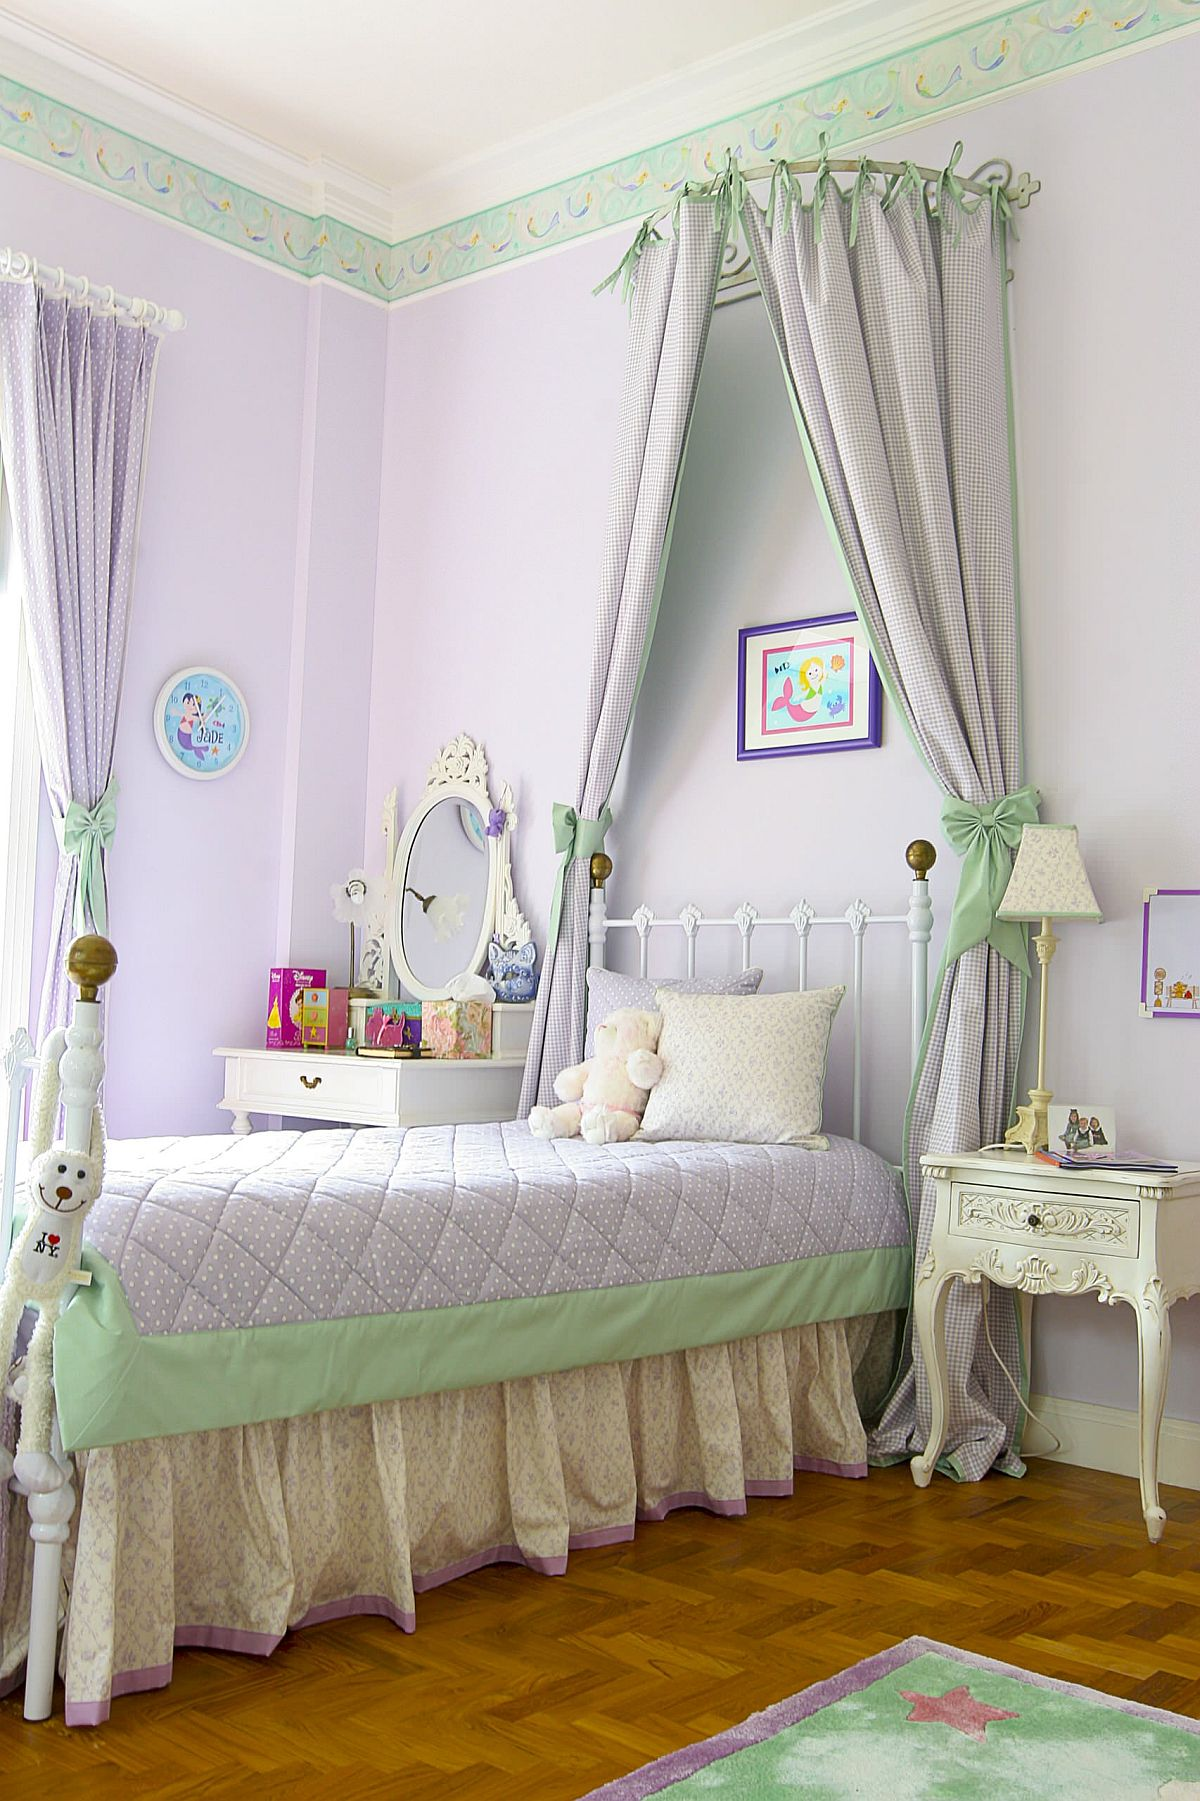 Captivating pastel violet backdrop coupled with pastel green in the spacious kids' room